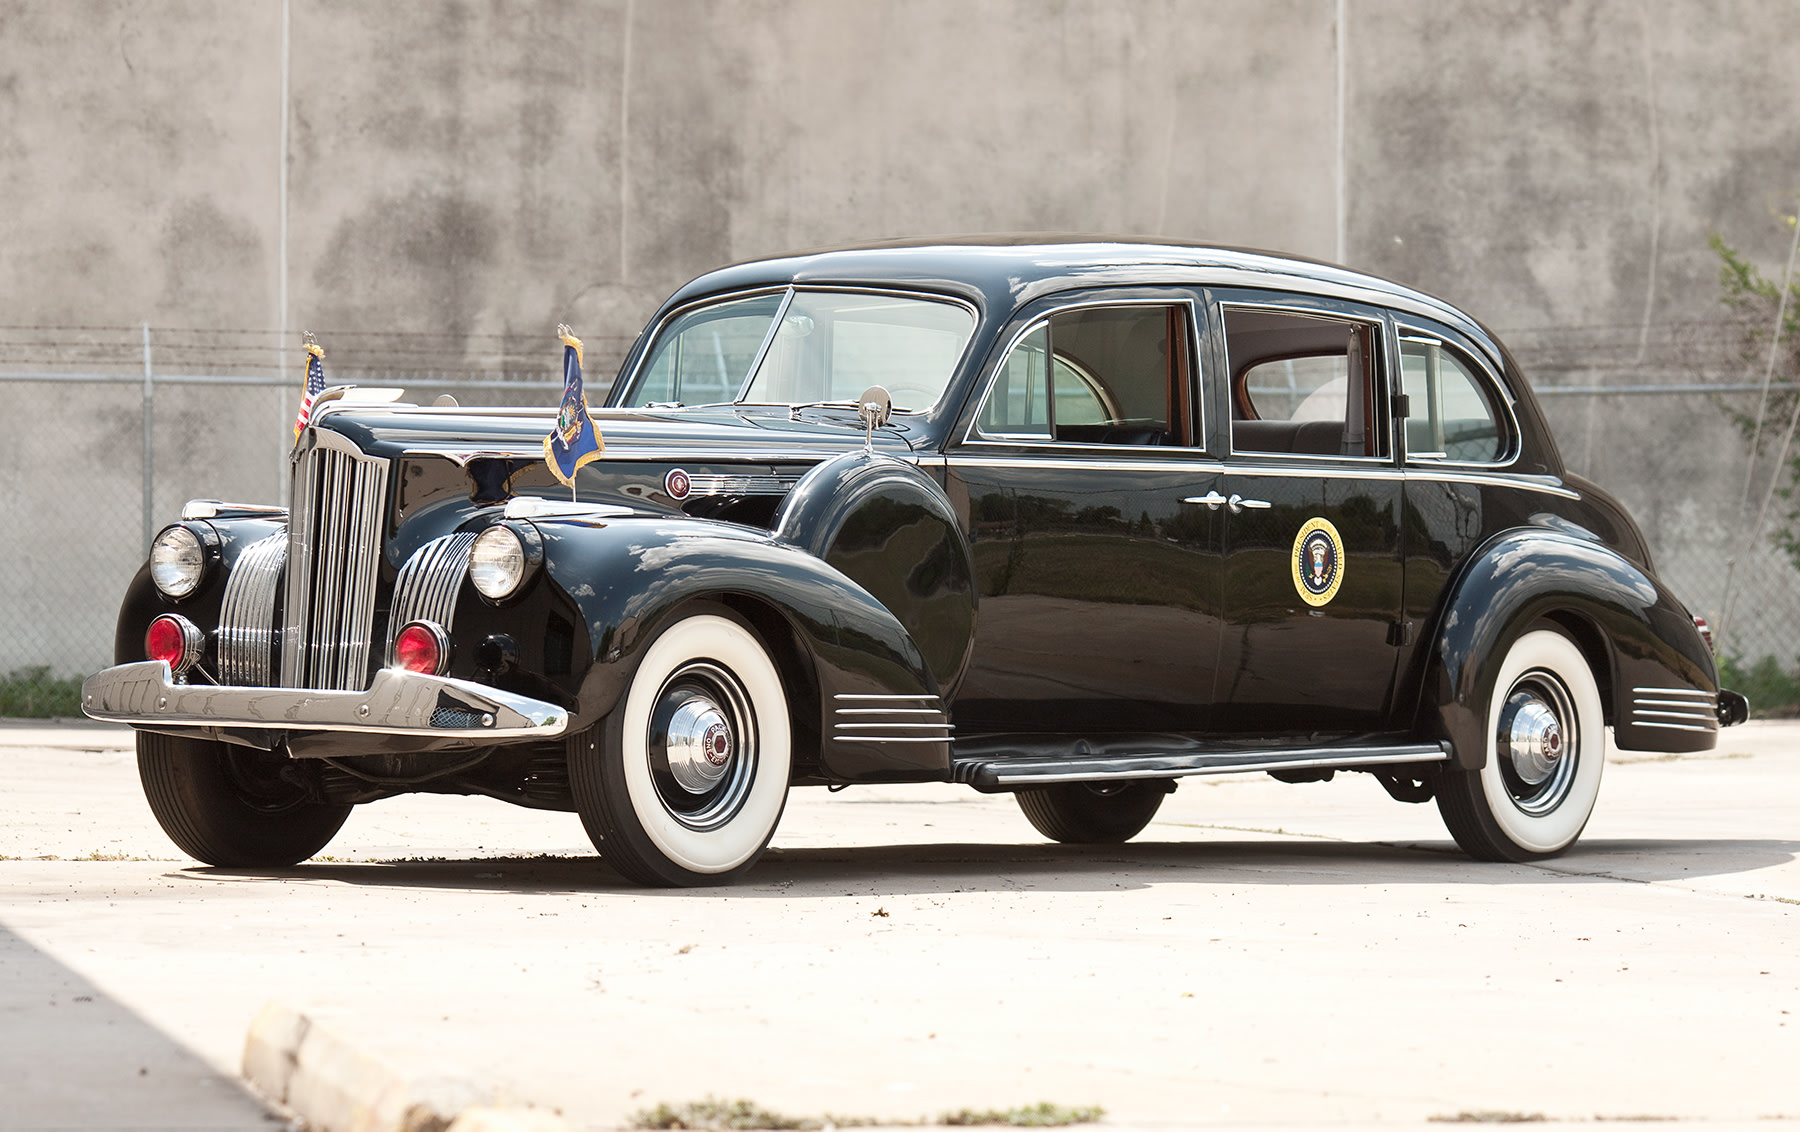 1941 Packard Custom Super-8 One-Eighty Touring Limousine